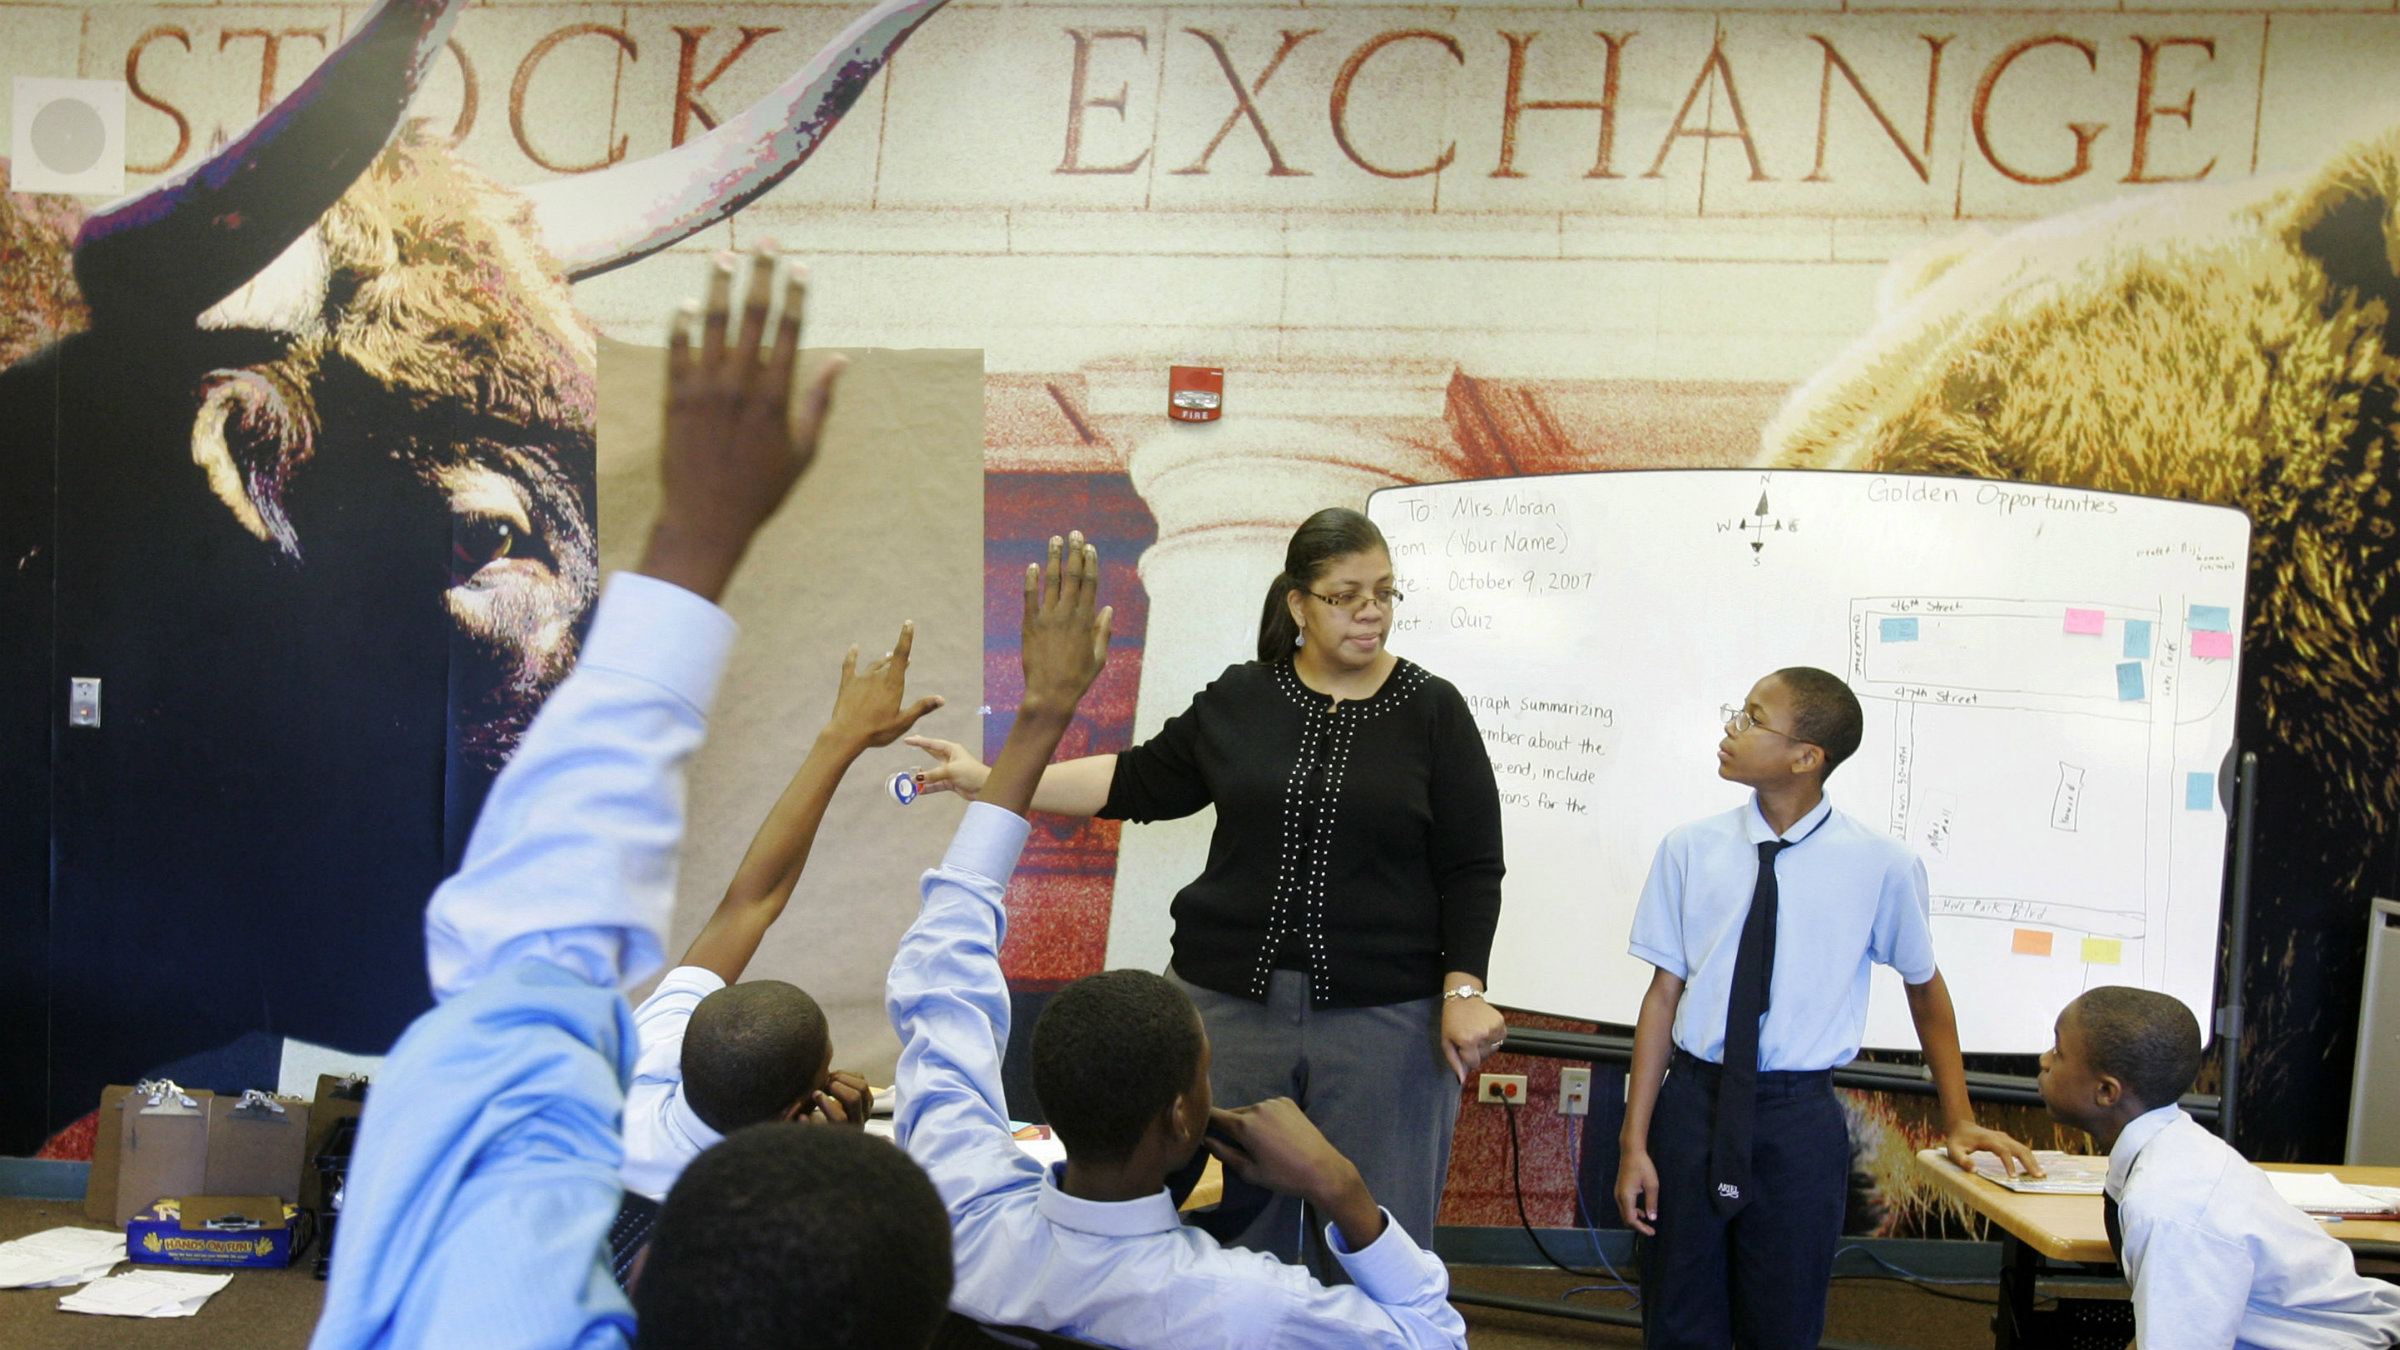 Connie Moran teaches class at the Ariel Community Academy in Chicago, Tuesday, Oct. 9, 2007. The school, sponsored by an African-American mutual fund company, gives kids real money to invest as a class that they collect when they graduate. (AP Photo/Charles Rex Arbogast)